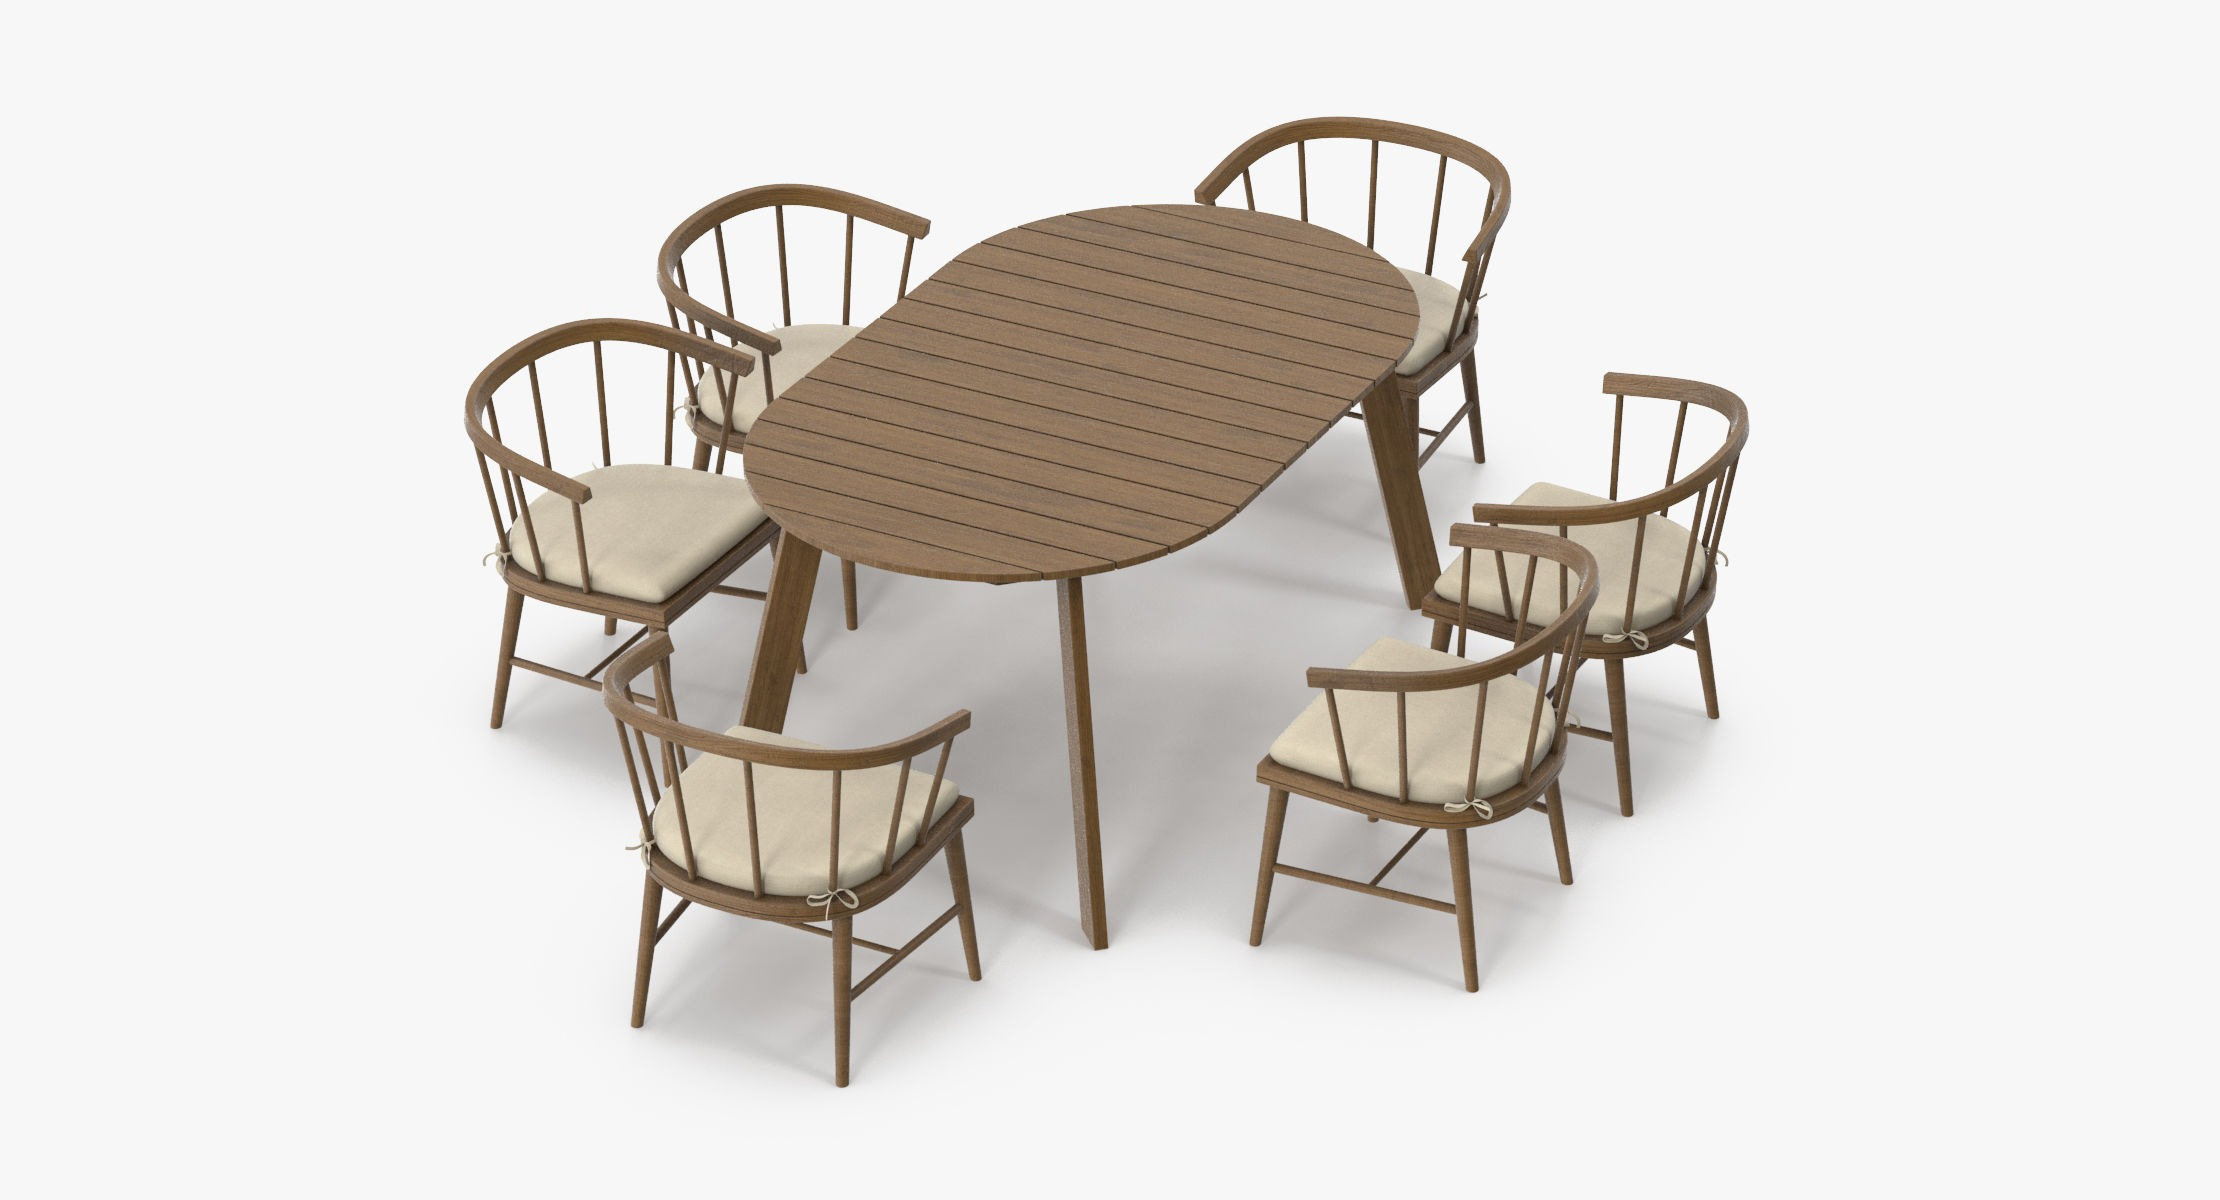 Patio Dinning Table Round and 6 Chairs - reel 1